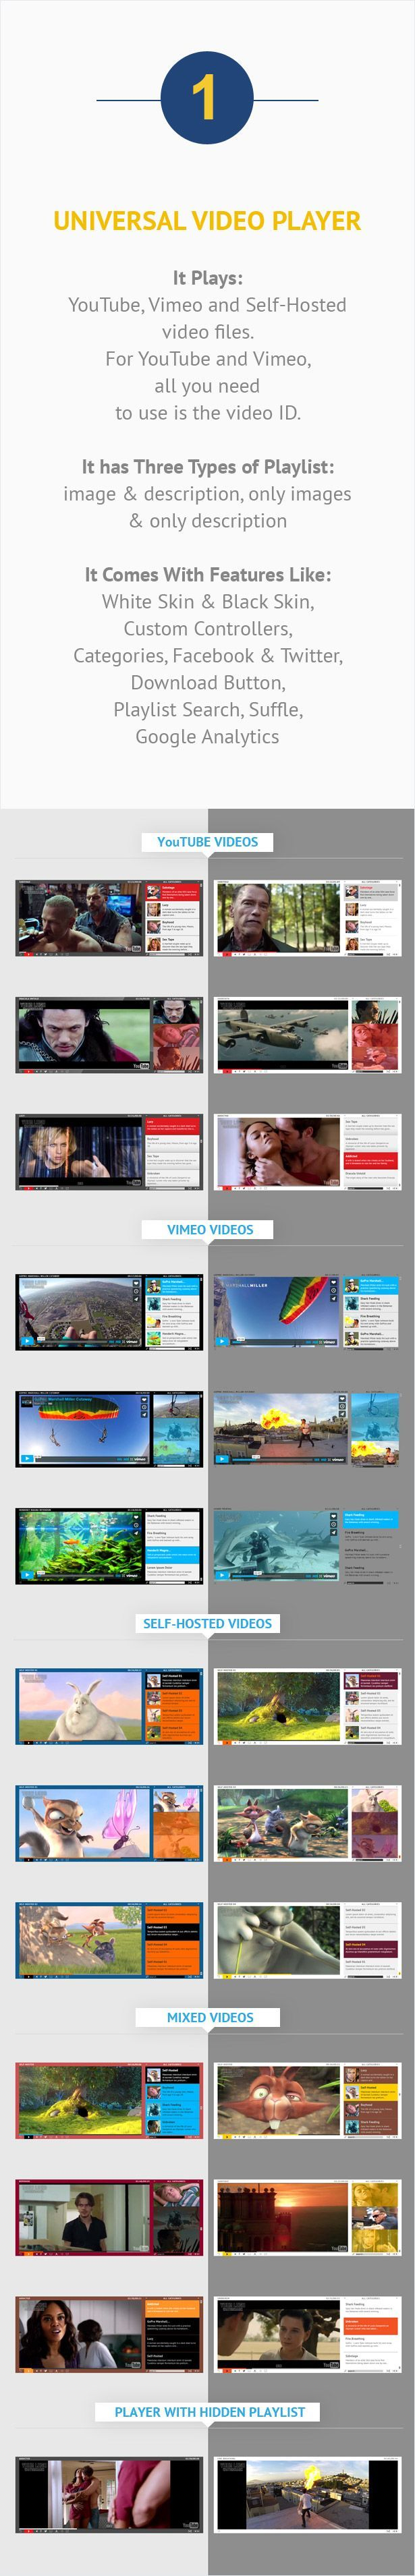 Universal Video Player VC add-on for WPBakery Page Builder (formerly Visual Composer)